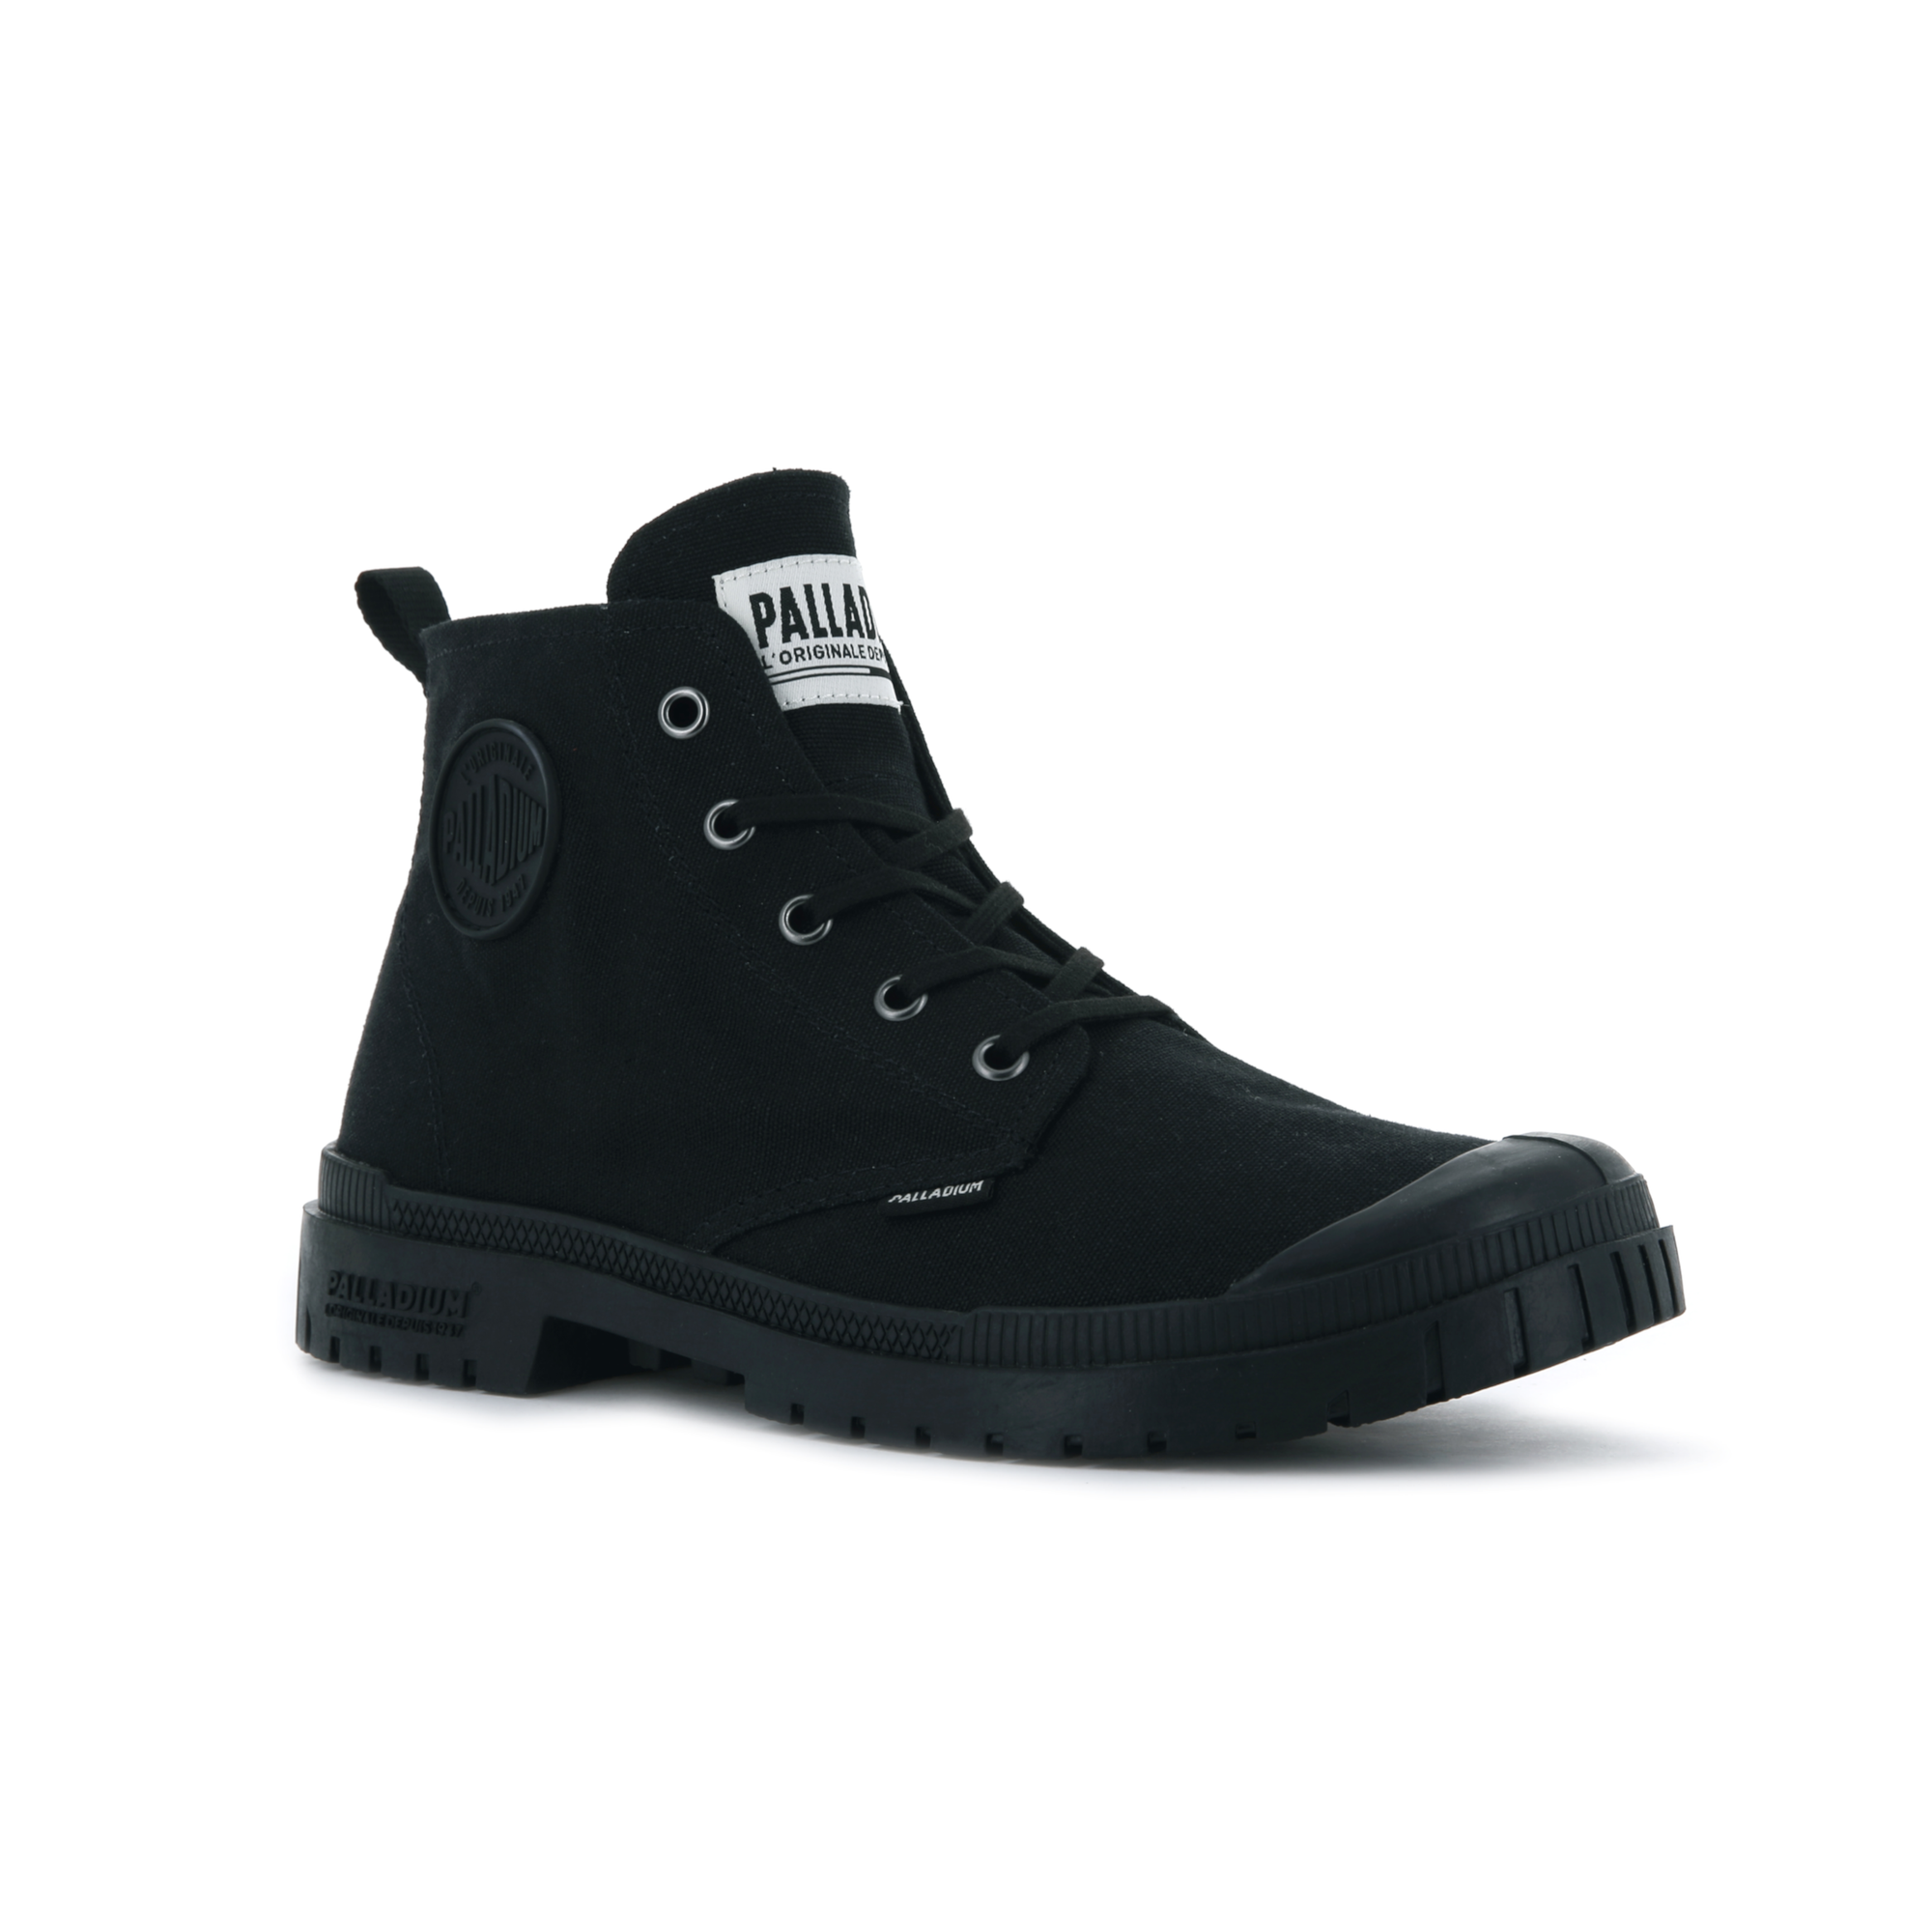 Pampa SP20 HI CVS - Black/Black